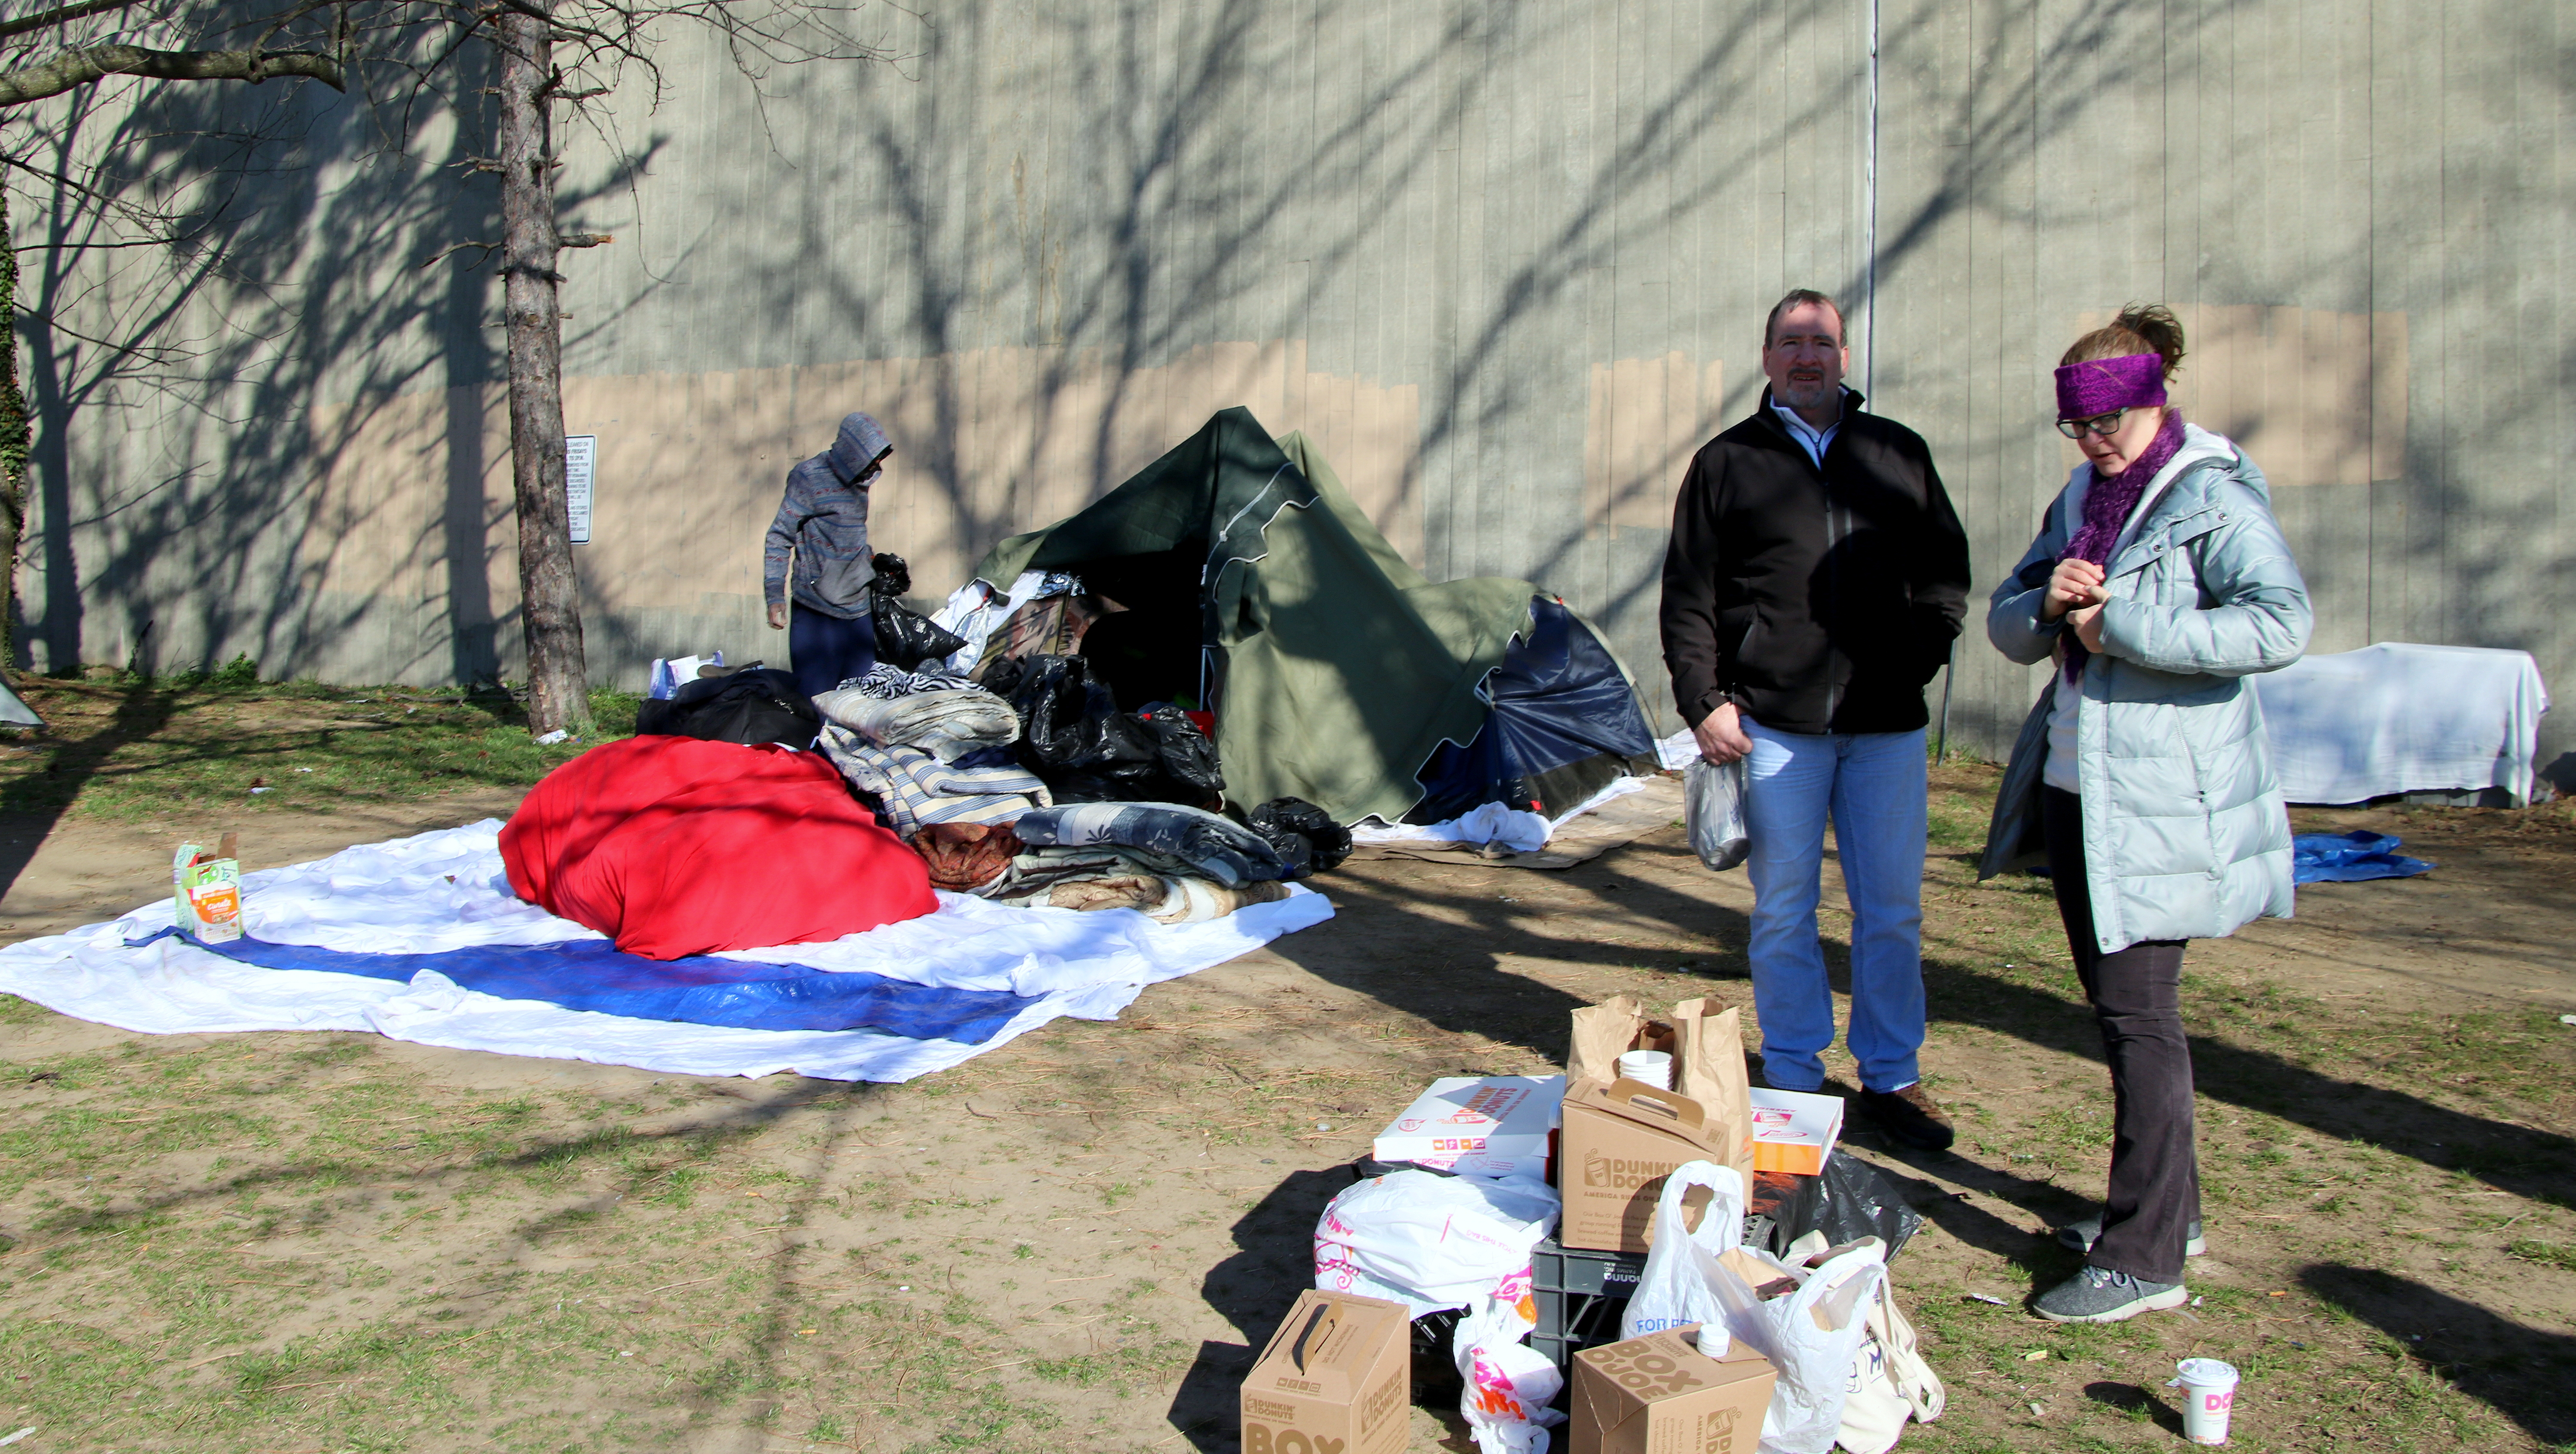 chris-rafferty-and-carolyn-johnson-homeless-encampment-mlk